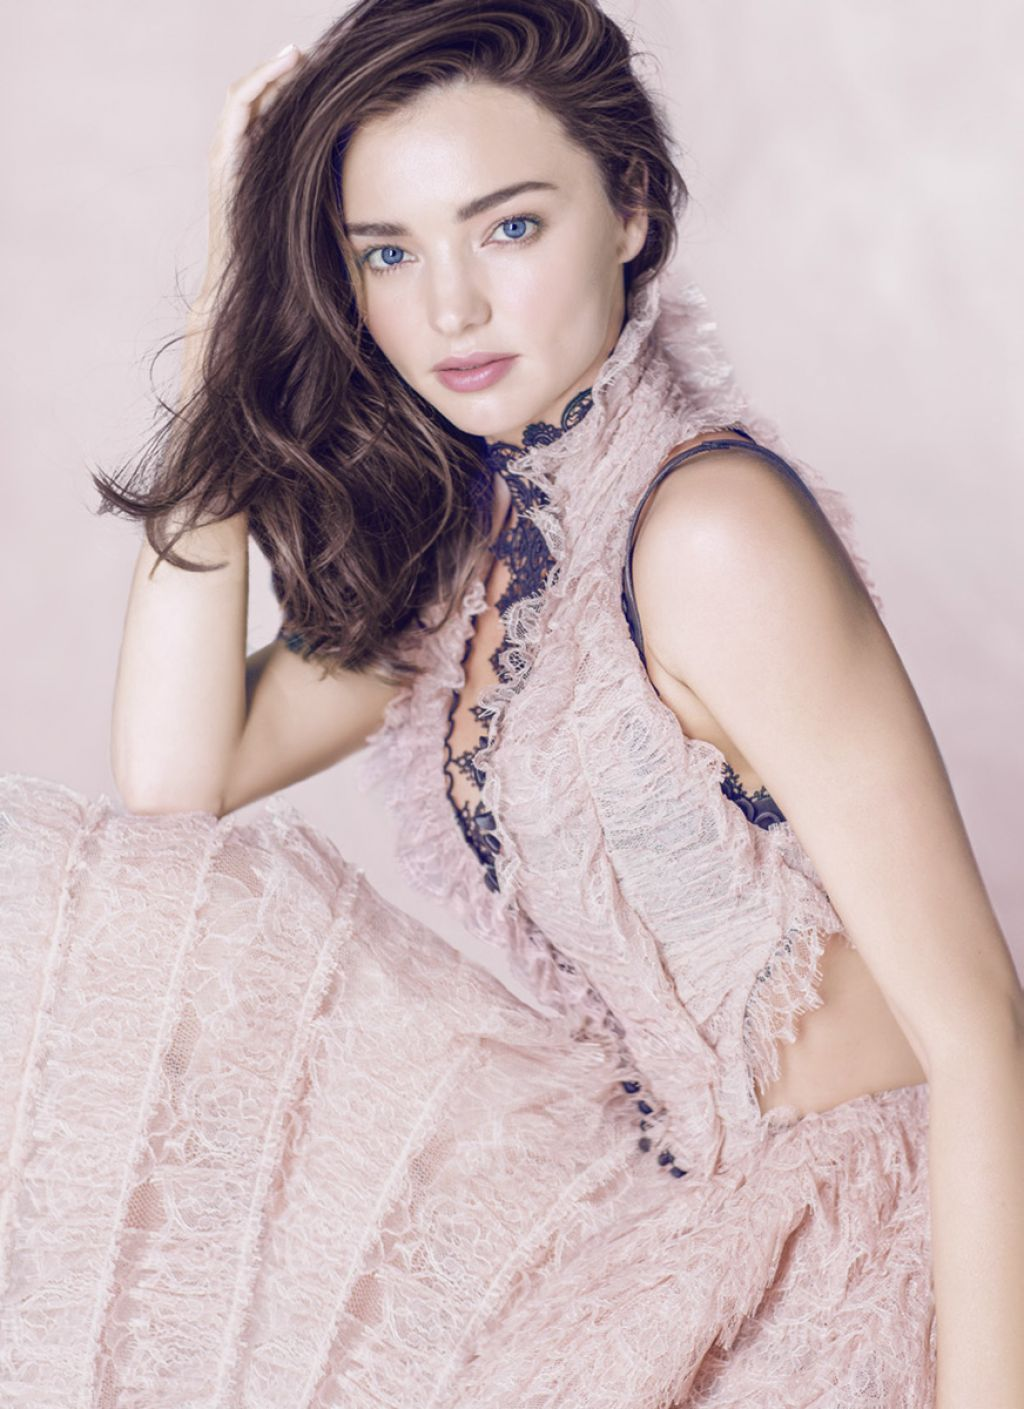 Australian Victoria's Secret model Miranda Kerr Full HD Photos & Wallpapers